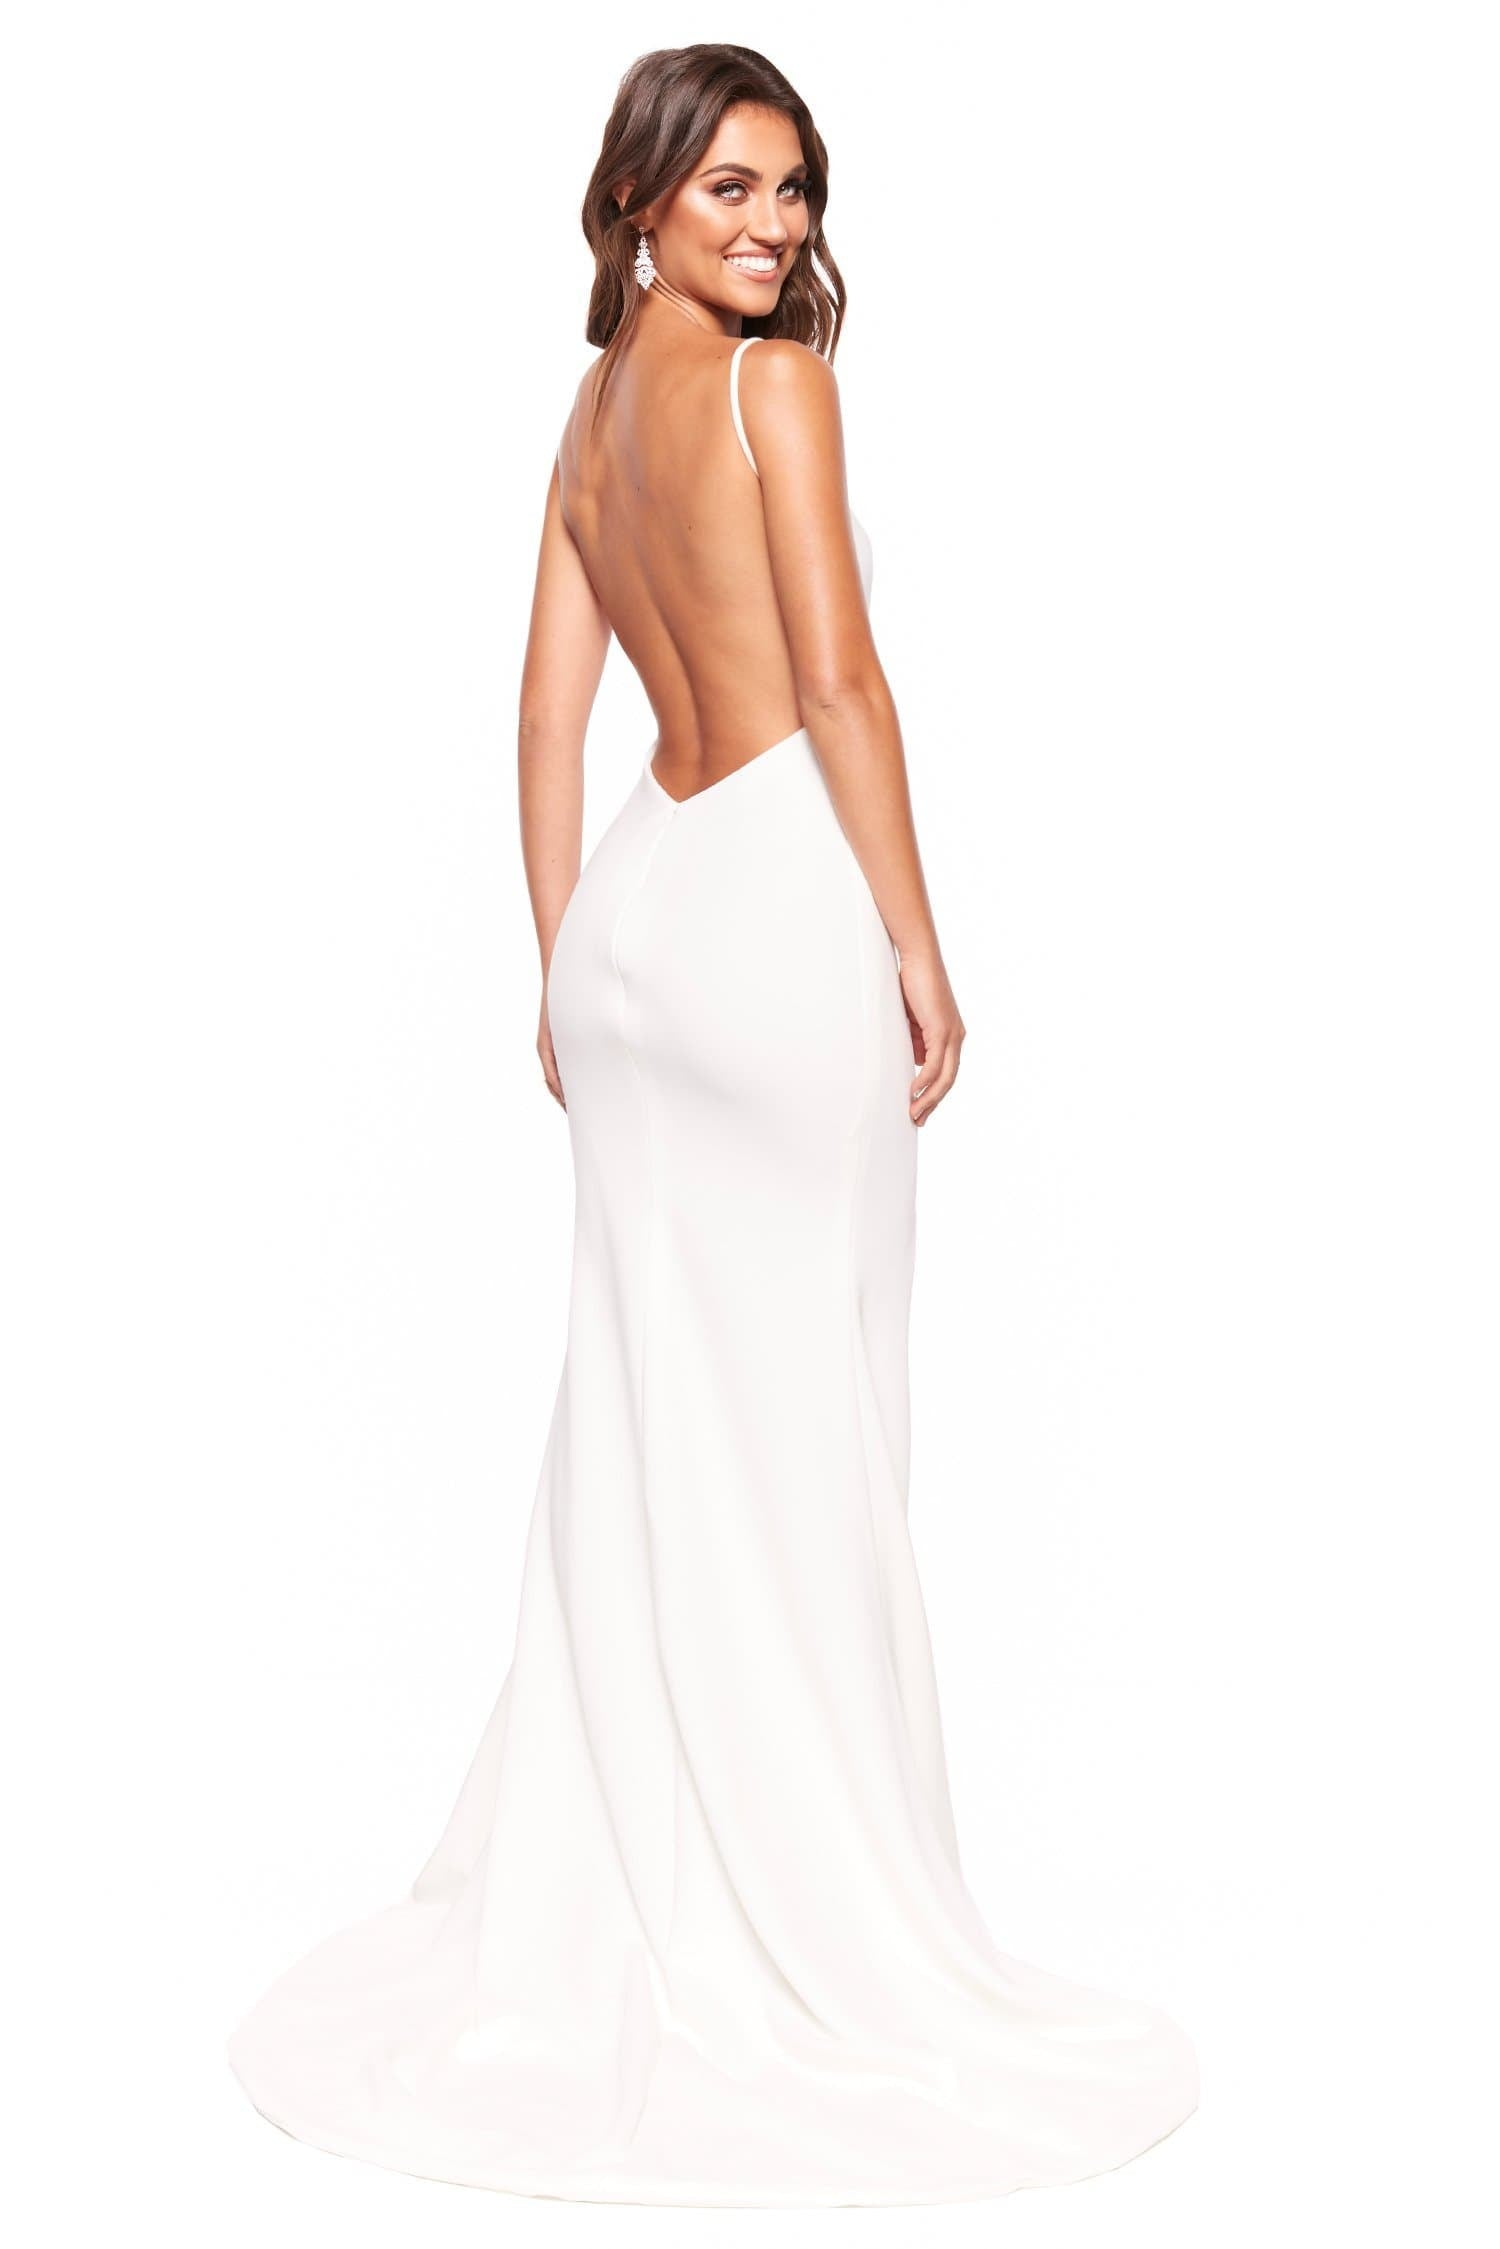 A&N Luxe April - White Low Back Ponti Gown with Slit